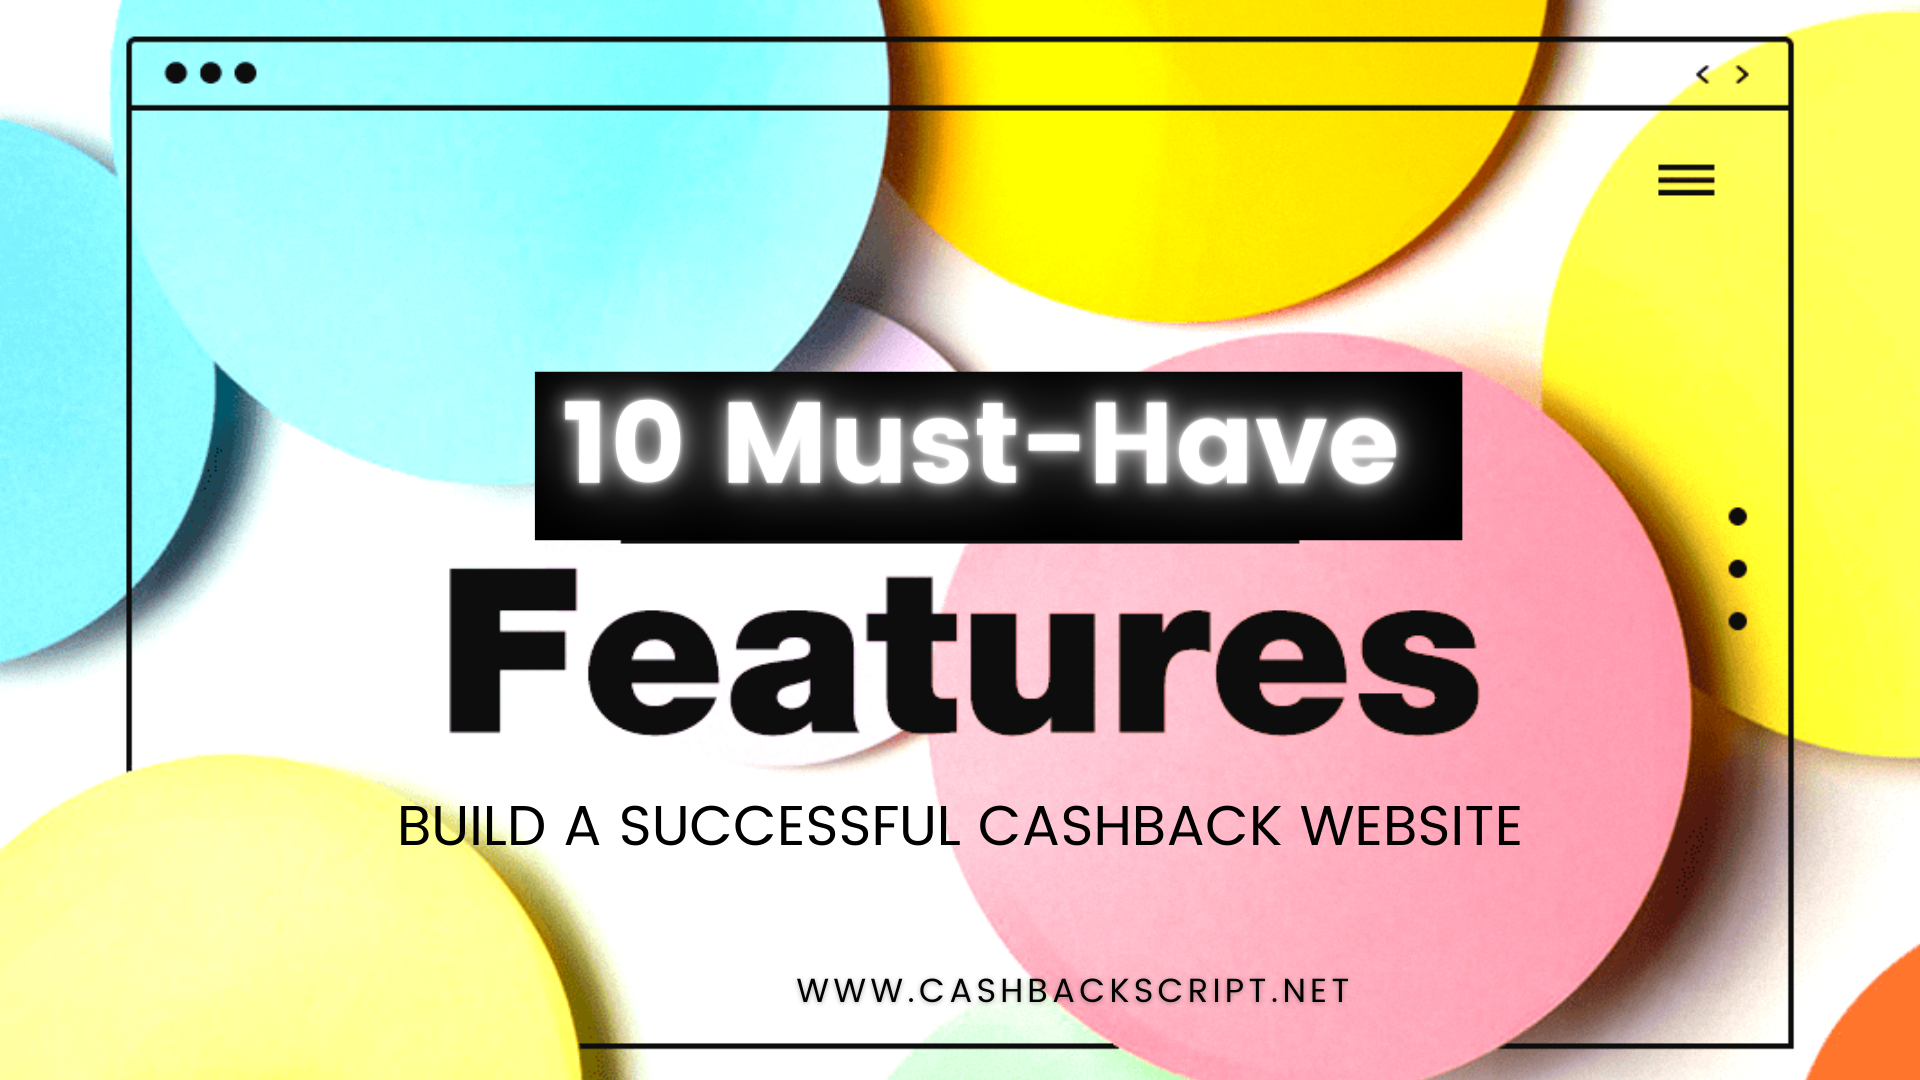 10 Must-have Features to build a Successful cashback Website